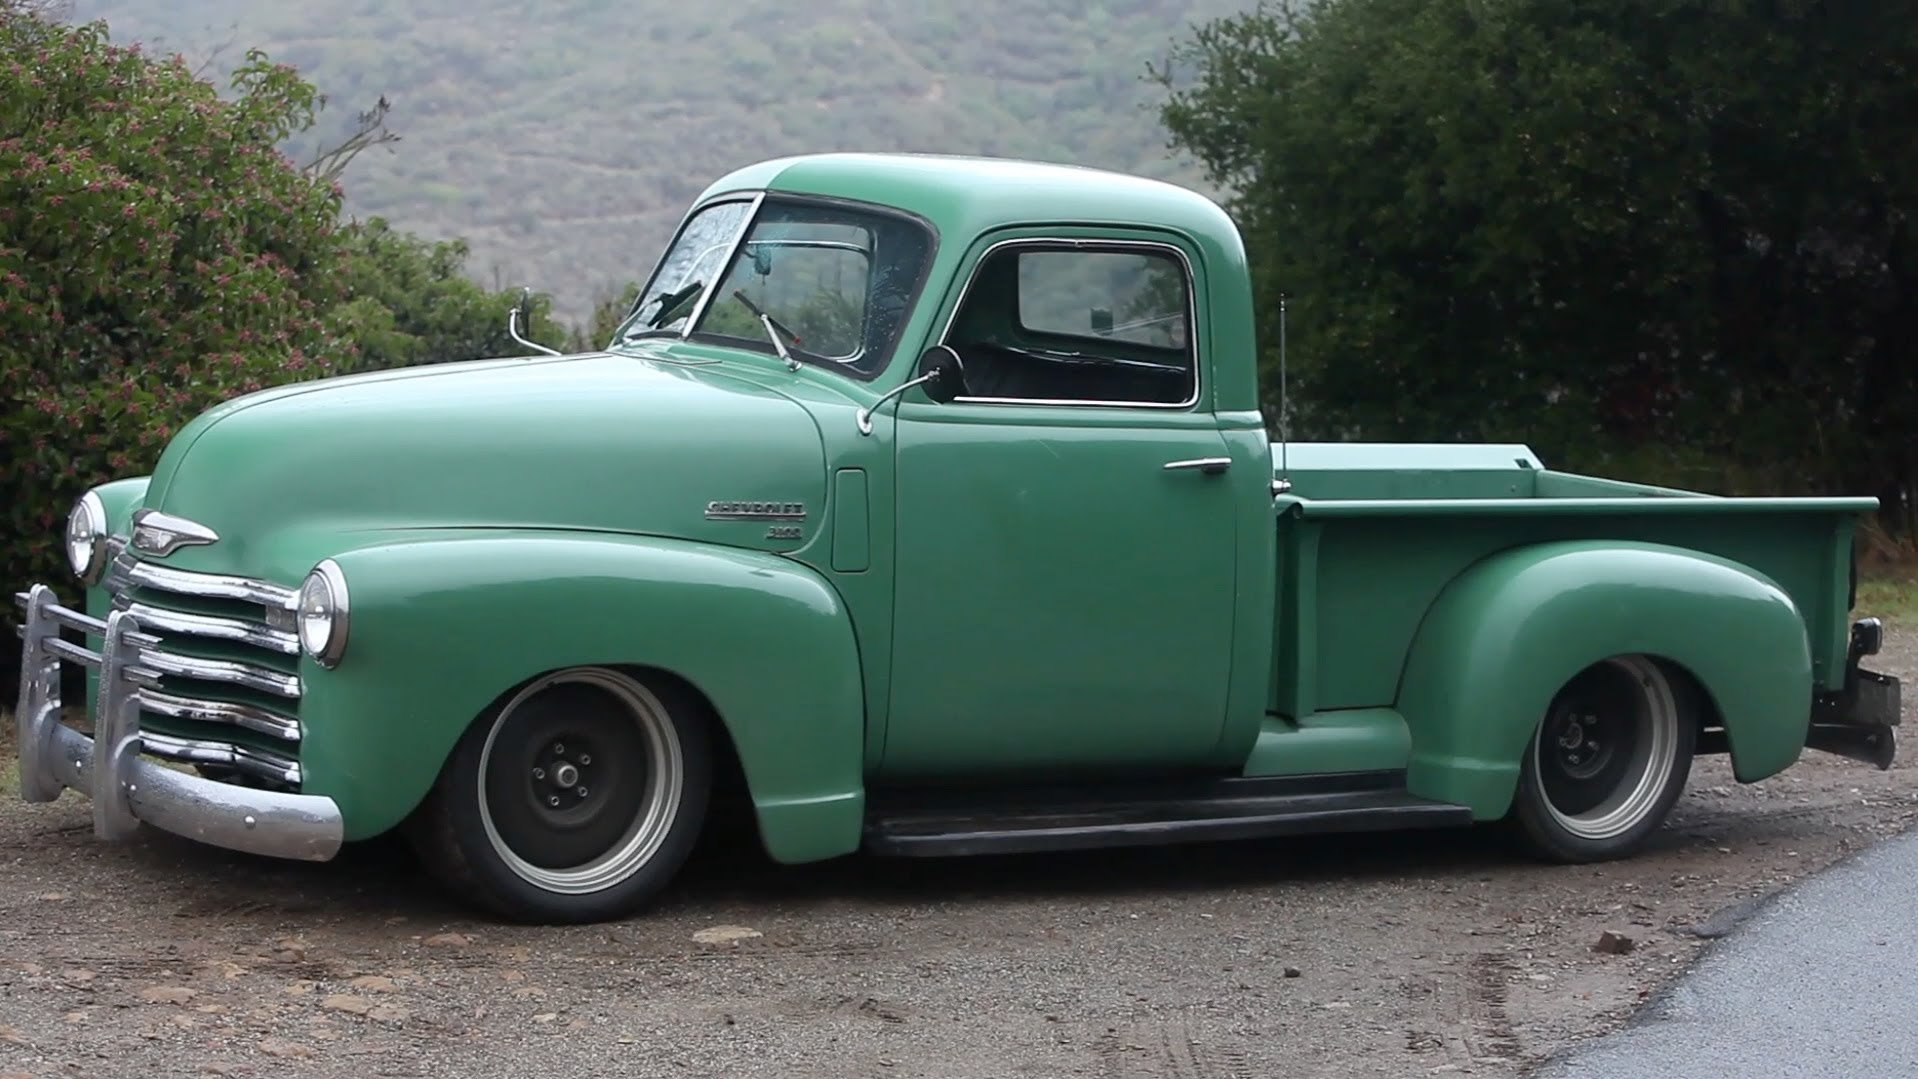 This 1950 Chevy Pickup isn't your grandpa's farm truck1950 Chevy Pickup Engine